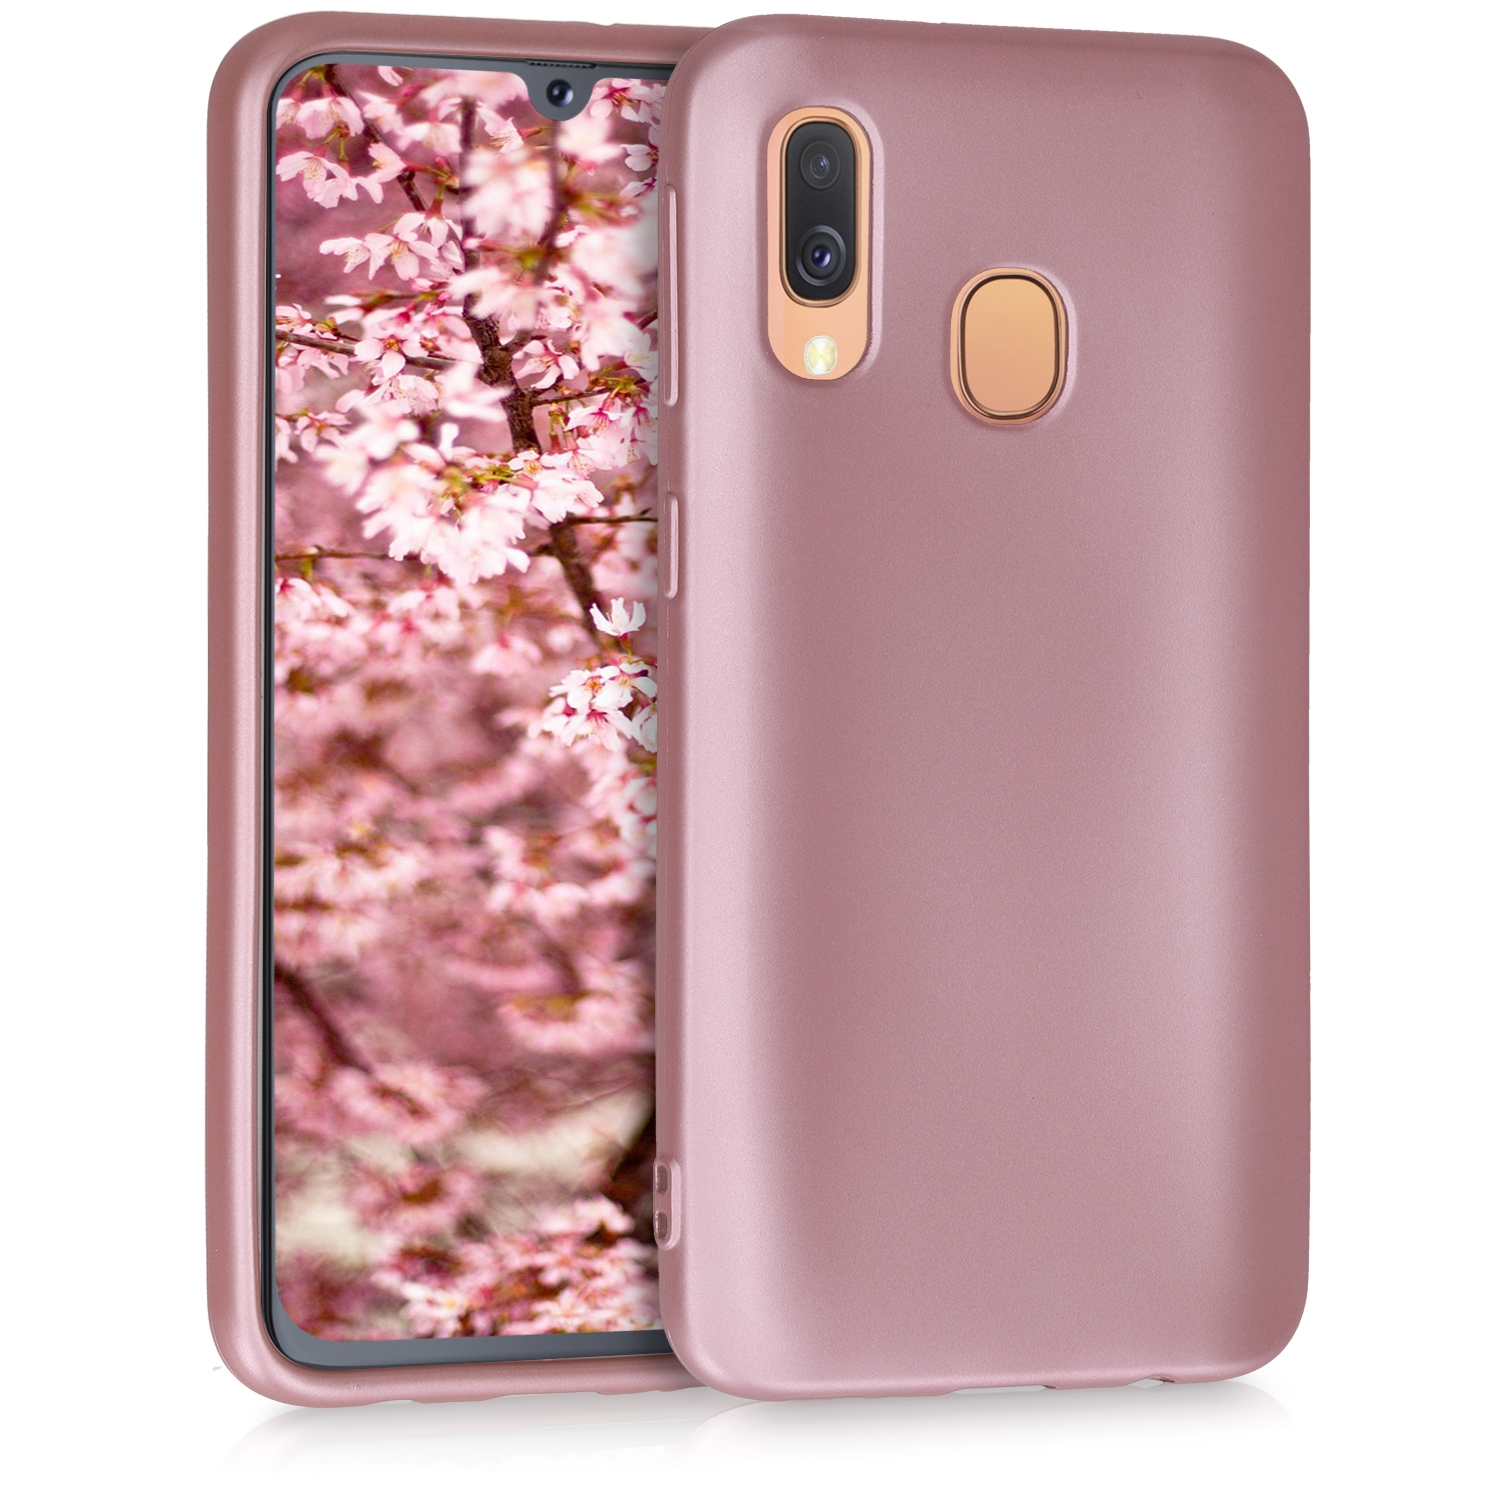 KW Θήκη Σιλικόνης Samsung Galaxy A40 - Metallic Rose Gold (48546.31)